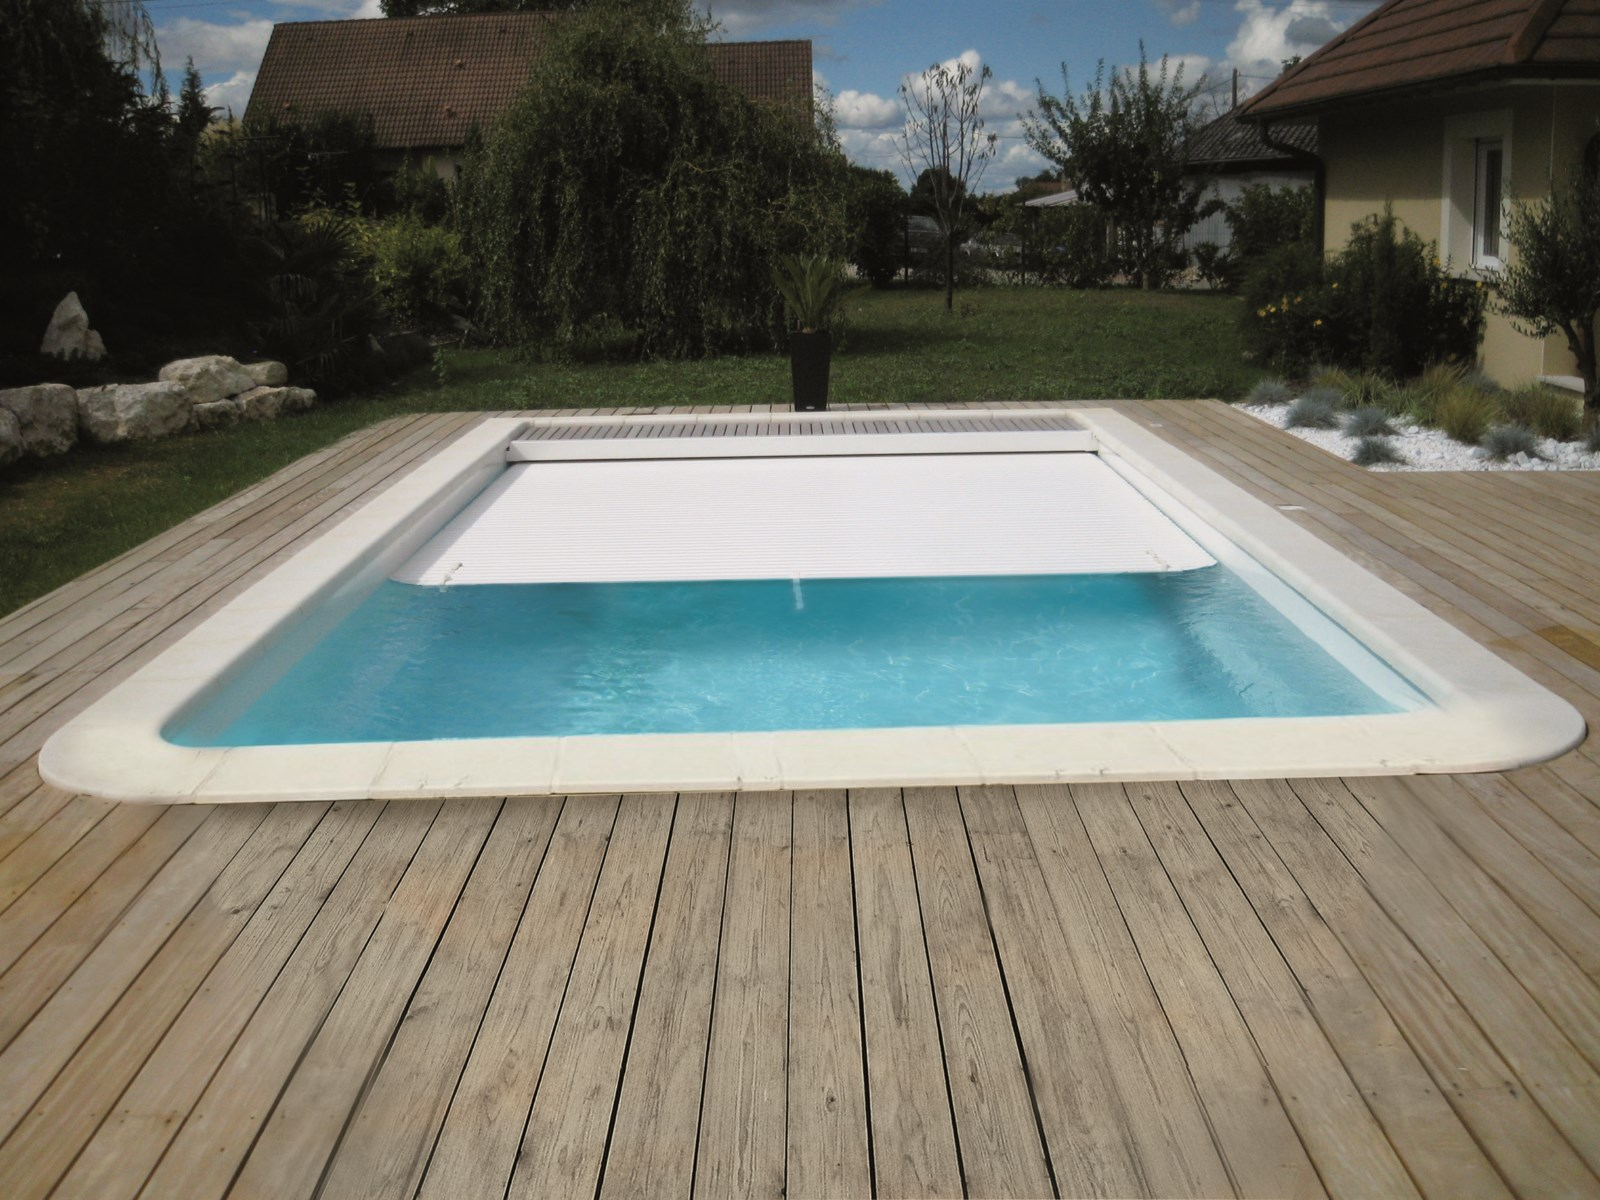 Piscine coque polyester rectangulaire mod le born o avec for Coque de piscine rectangulaire